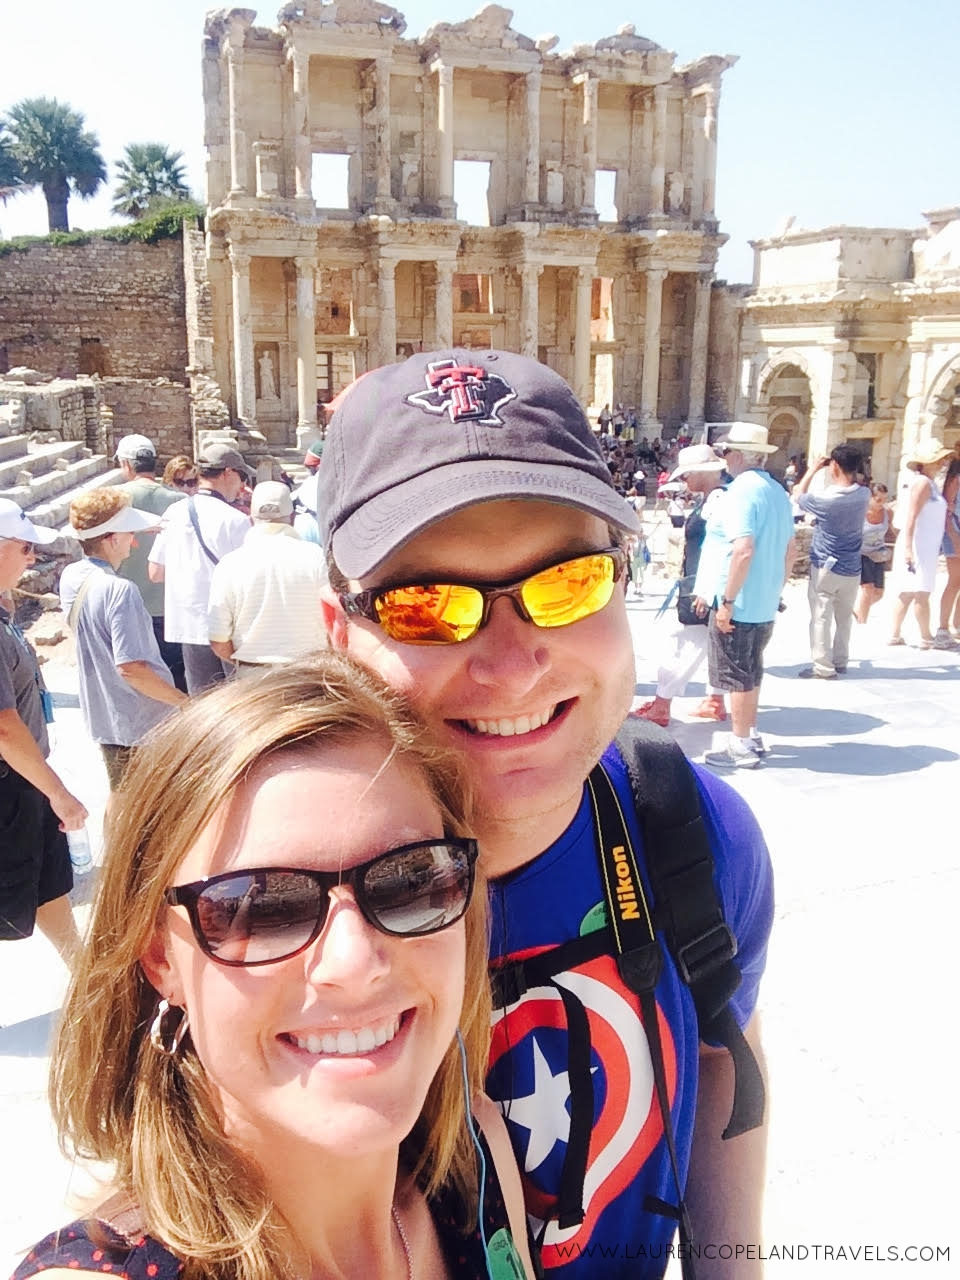 My husband and I during a port excursion in Ephesus, while on our 12 Day Mediterranean Honeymoon Cruise